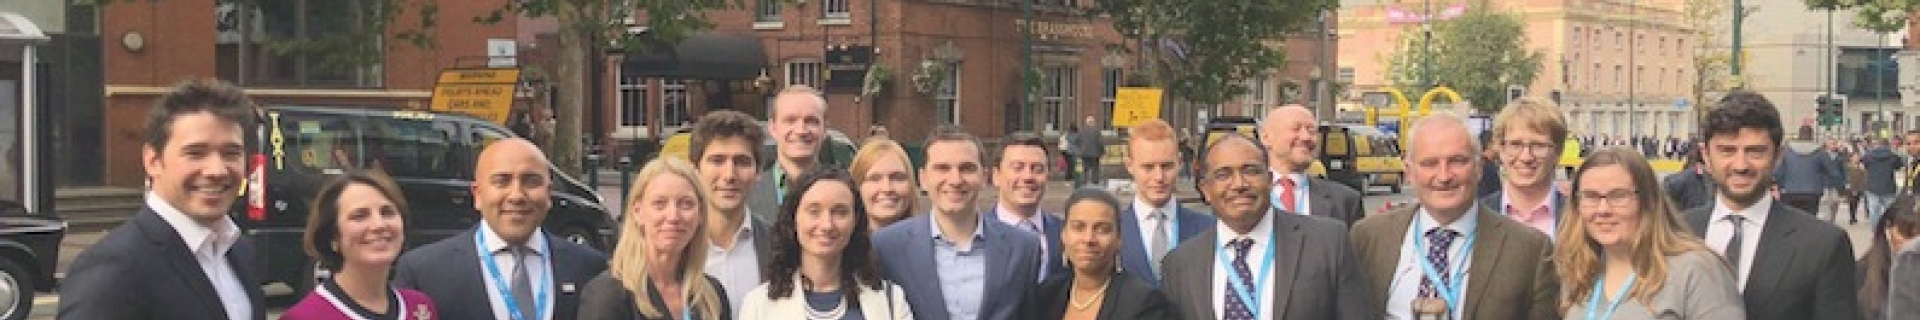 Banner image for Hampstead & Kilburn Conservatives